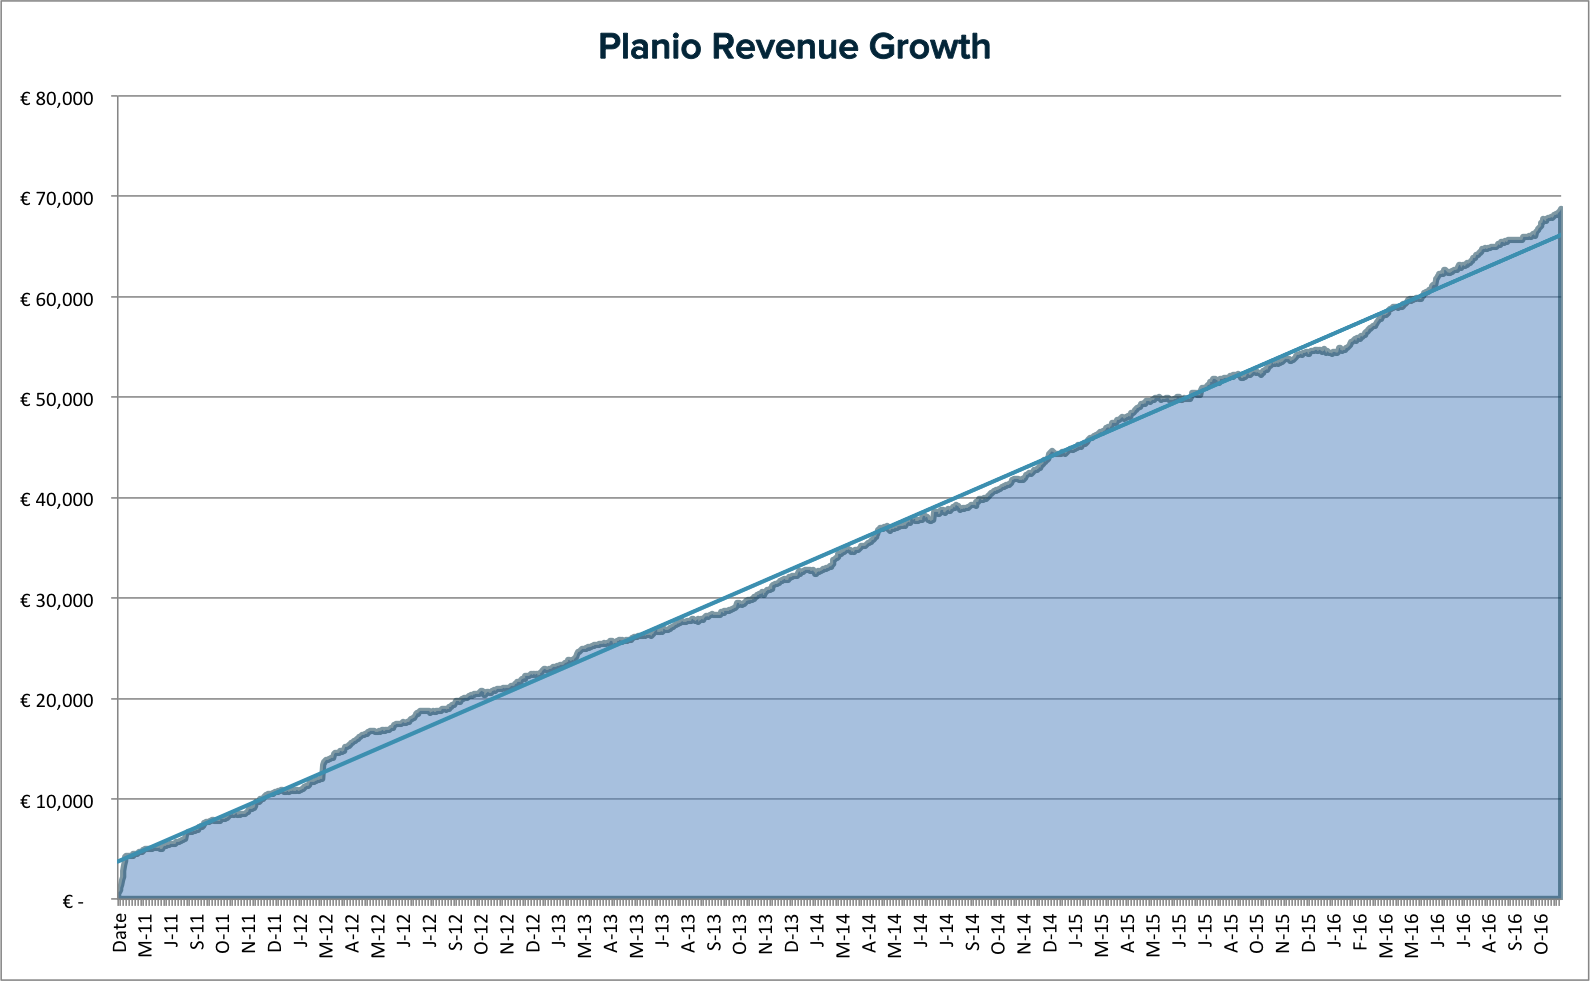 Planio's Revenue Growth